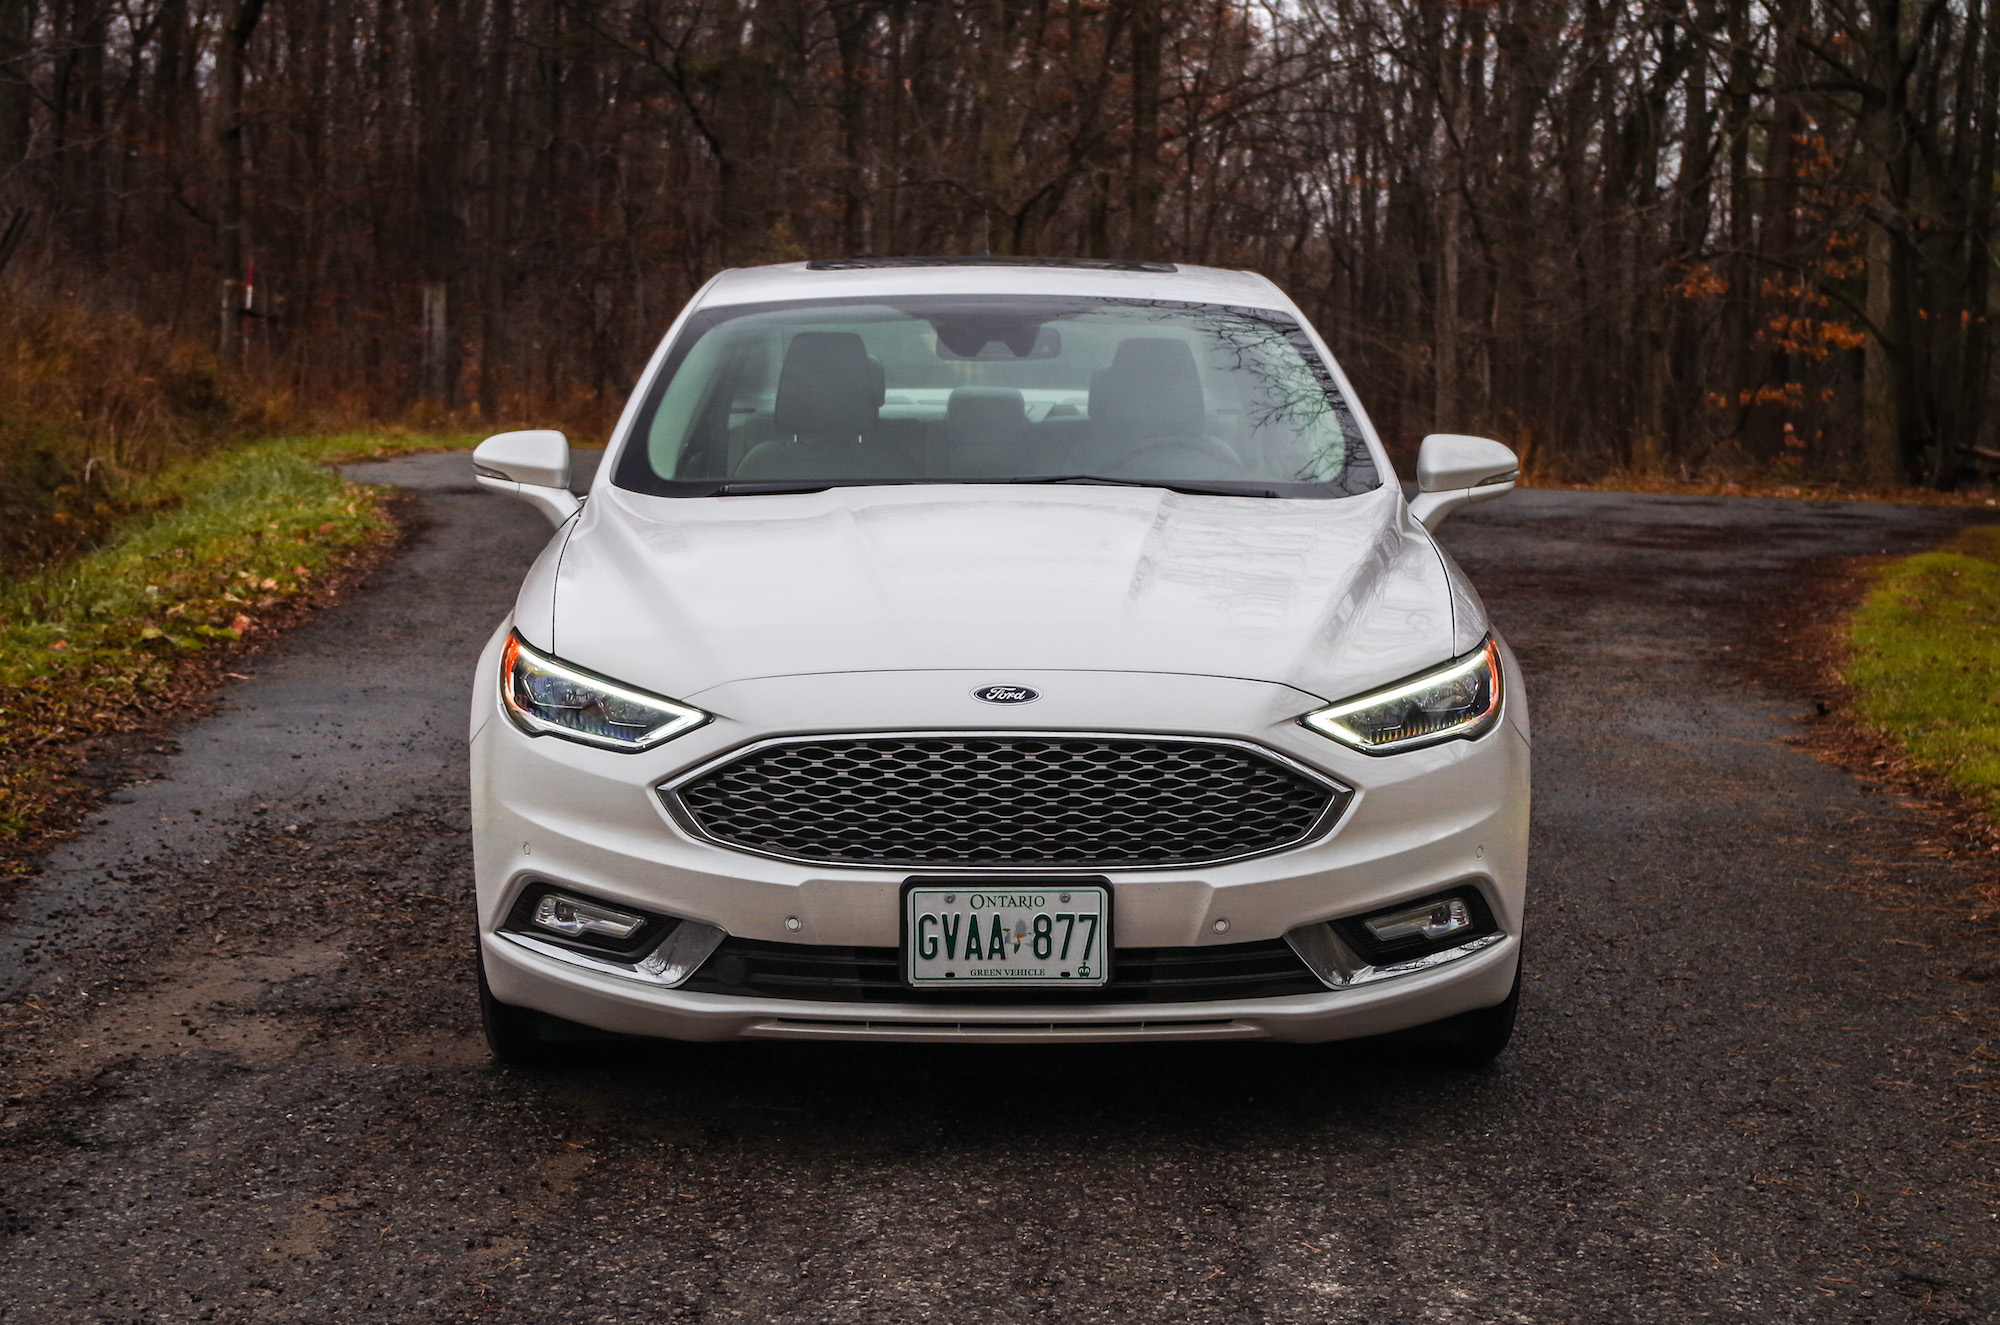 fusion foot zipping the down in platinum of enthusiast your ford daily web news seconds dynamite dash with driver review sport and less highway to past launches a you ramps zooming about far put from entrance